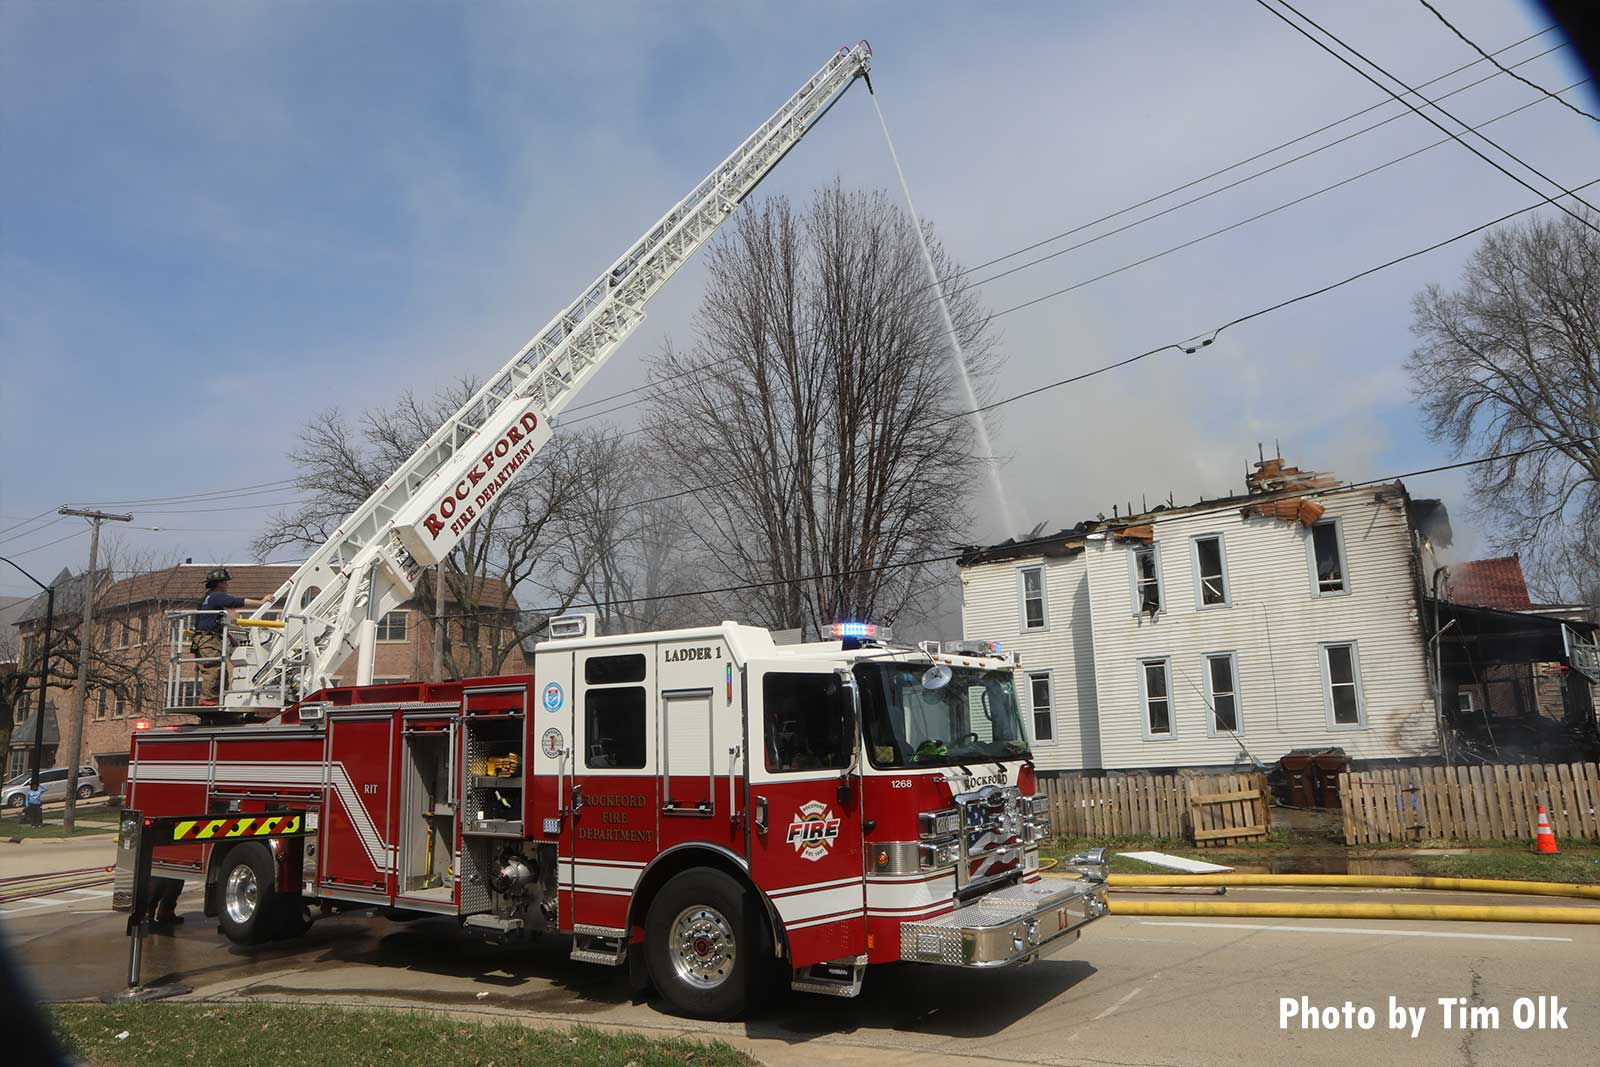 Aerial device in use at Rockford fire